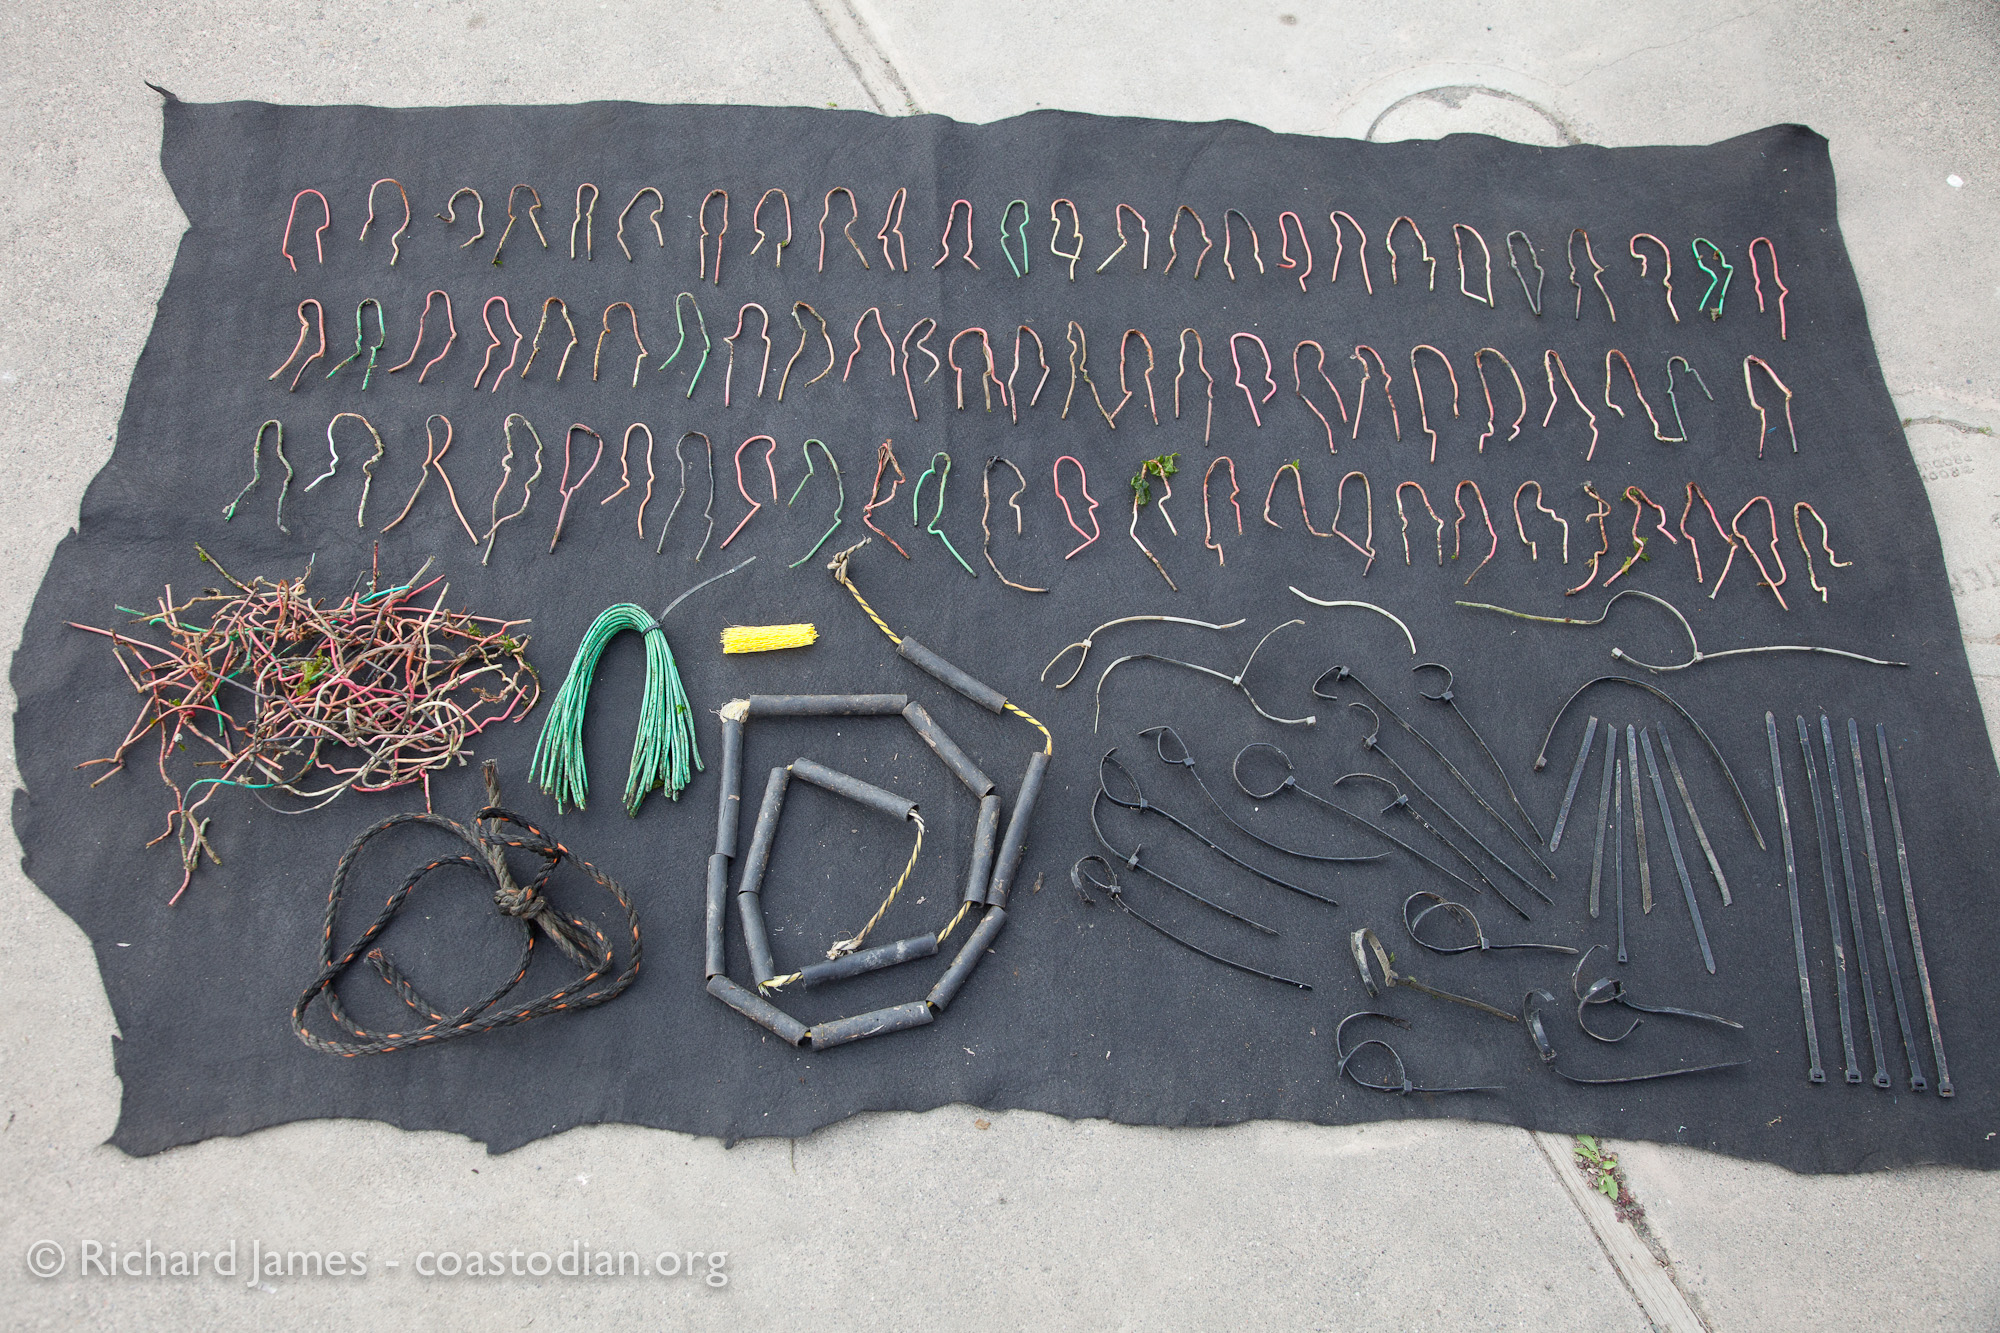 Alleged oyster litter collected on 10 May, 2015 along coast from Preston Point to Audubon Canyon Ranch parcel.  Plastic coated copper wire found under Point Reyes Oyster Company racks, large zip ties found on beach adjacent to Hog Island lease at Tom's Point. 154 abandoned oyster grow-out bags were also located, 41 of which hauled out.